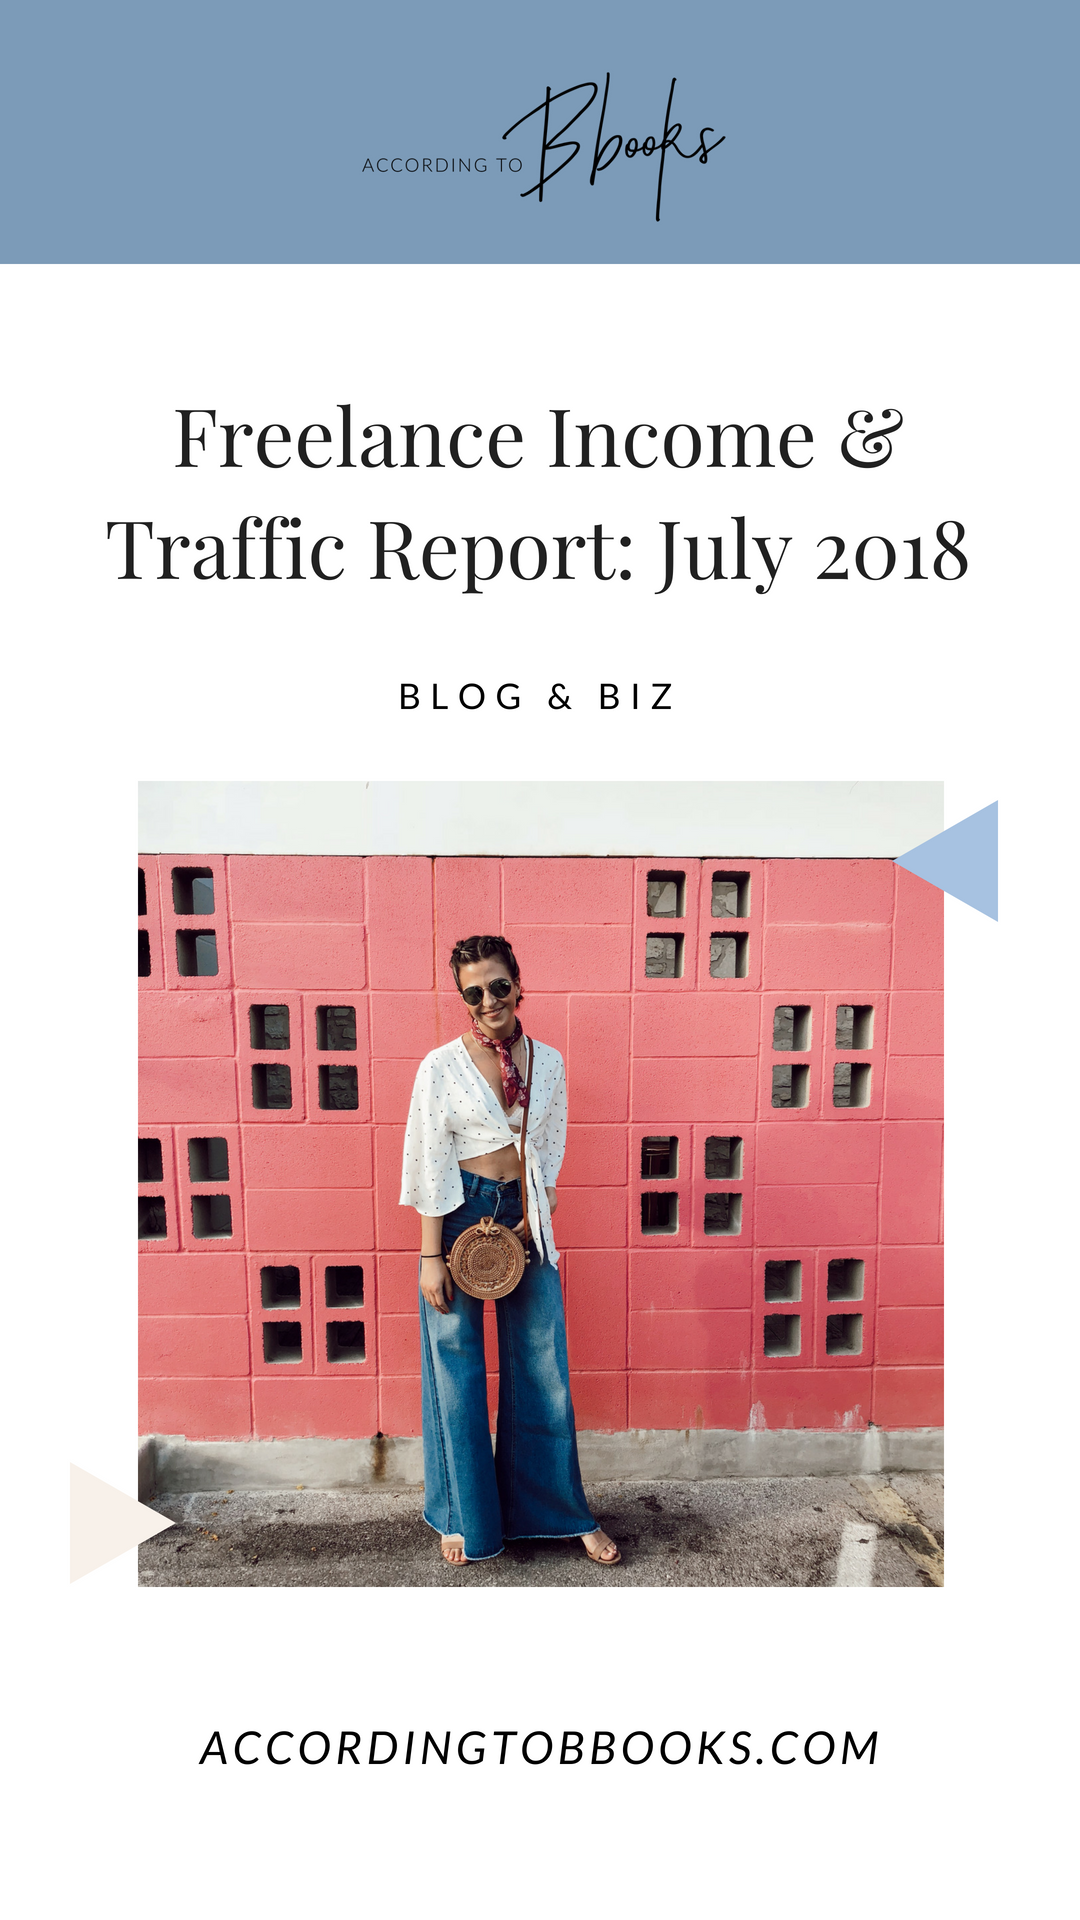 Freelance Income & Traffic Report: July 2018